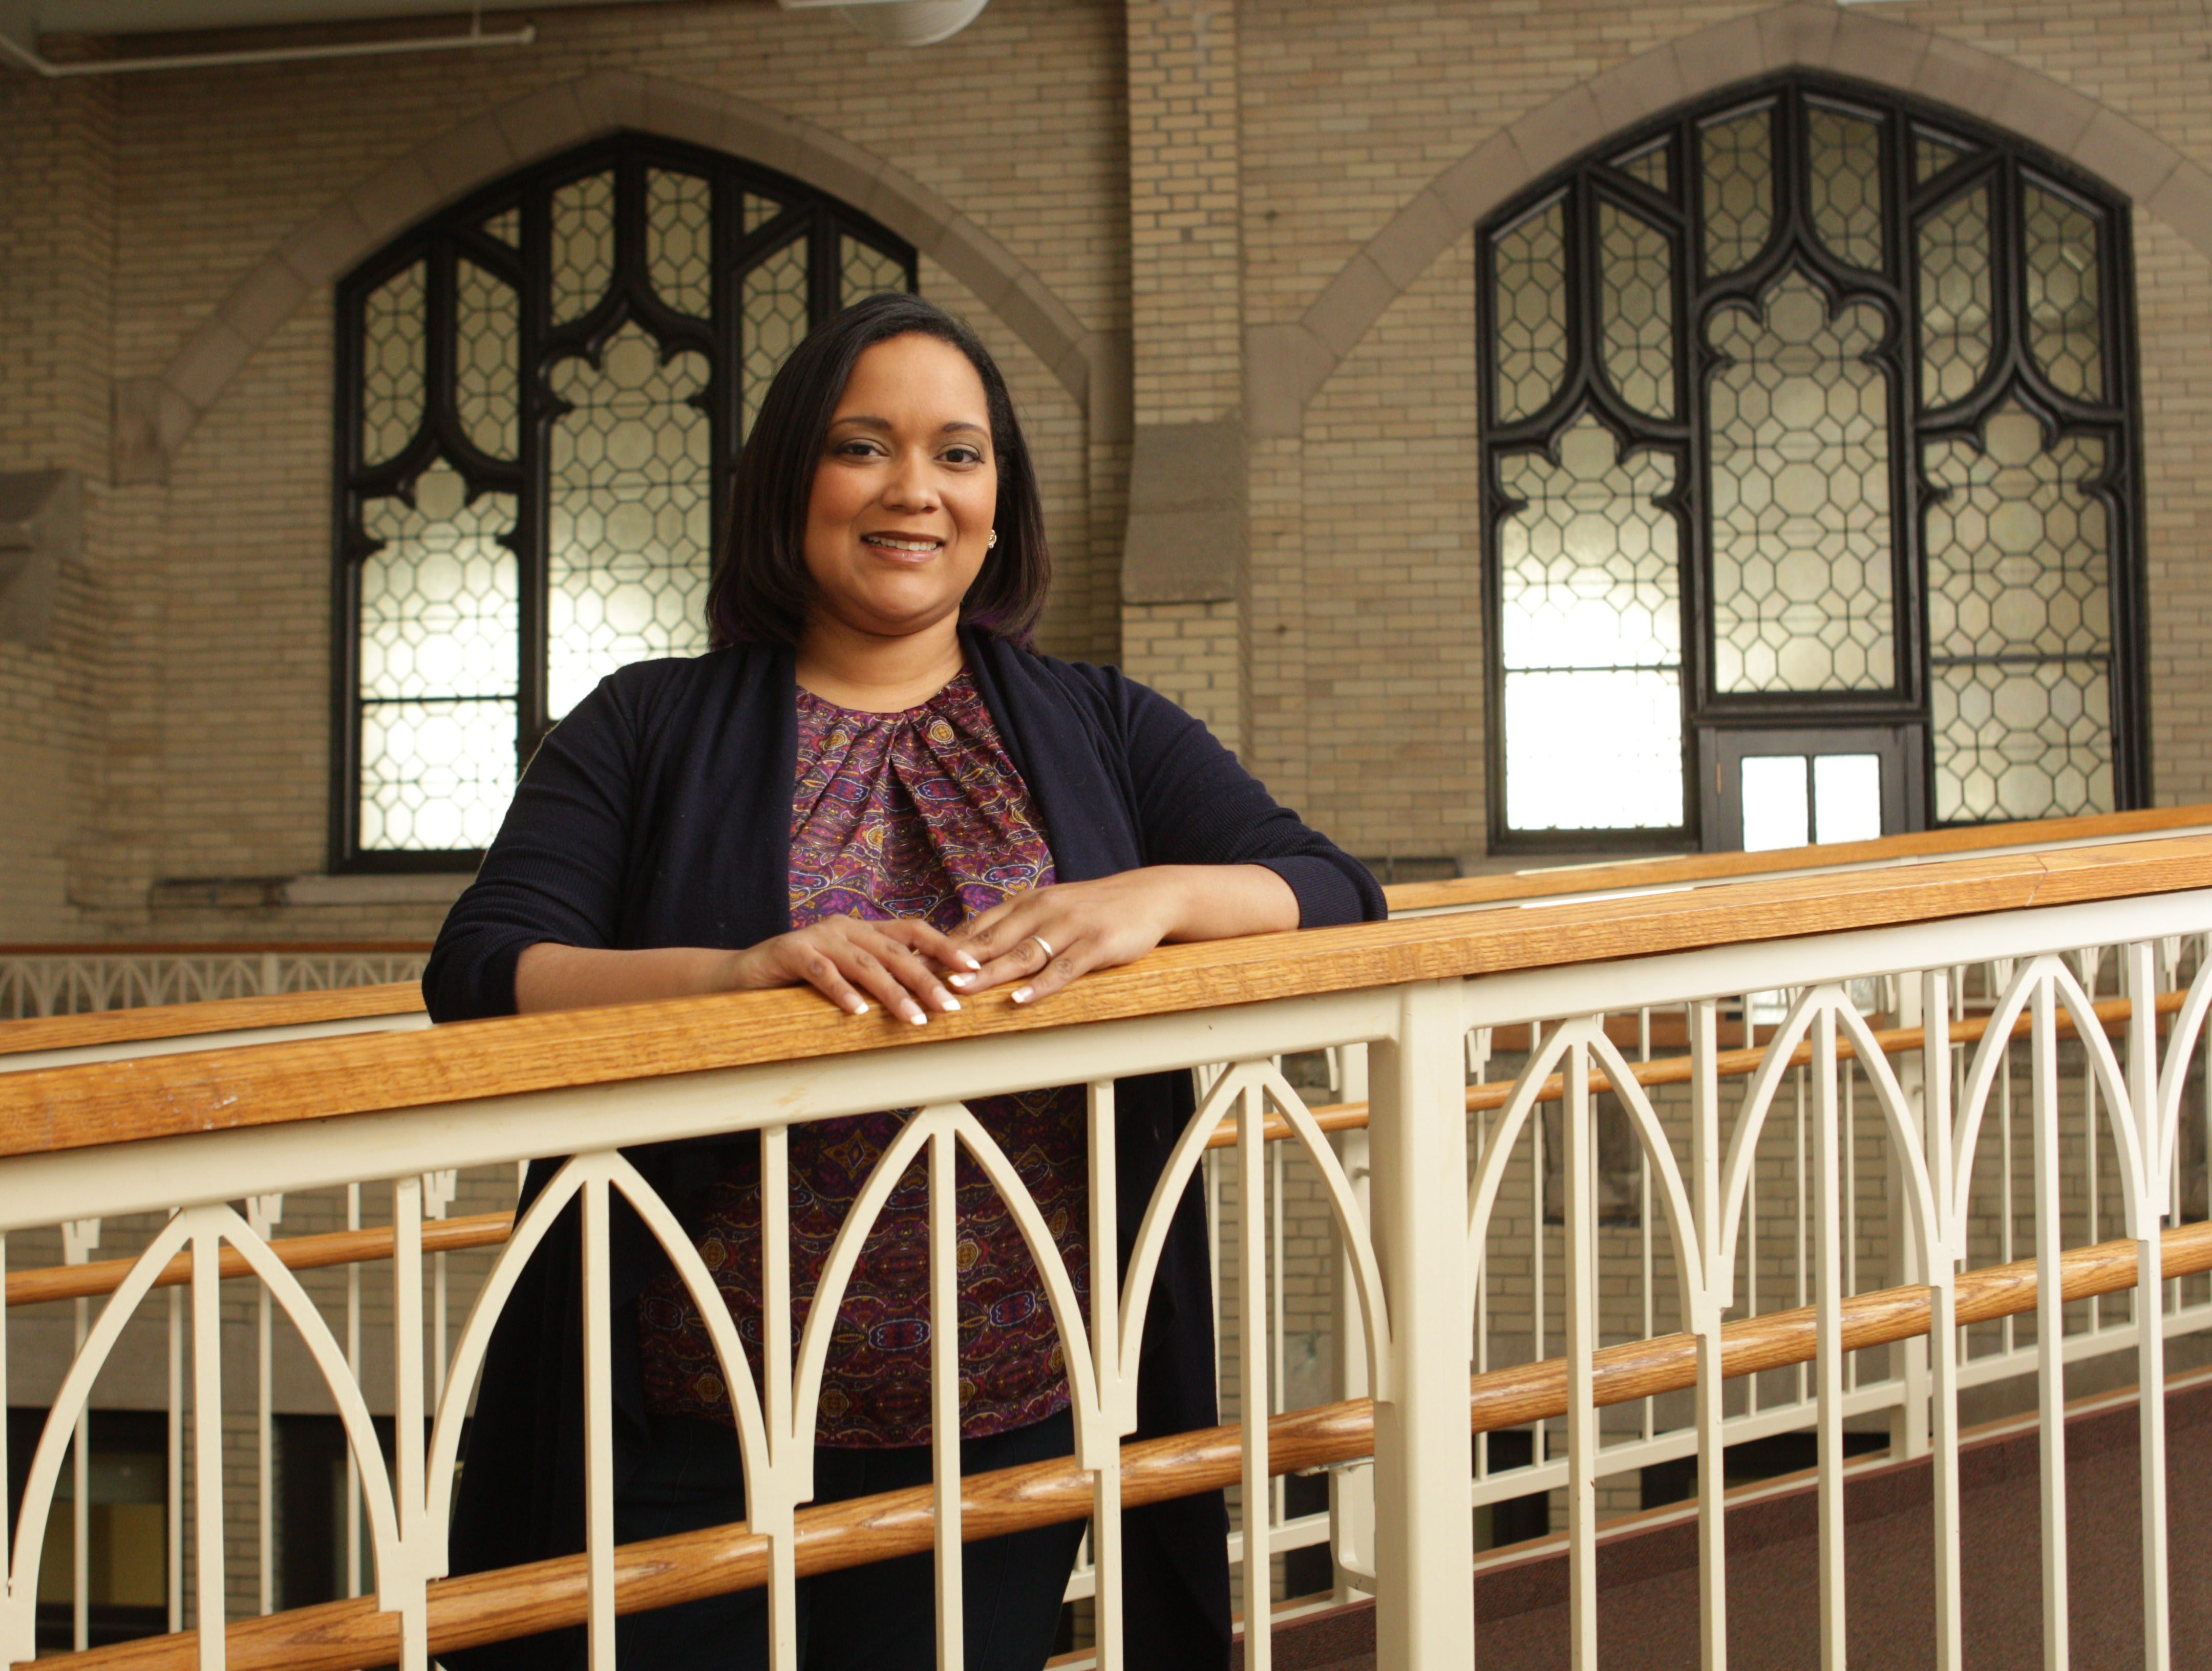 Nicole Lee, director of TransAfrica, returned to her alma mater, Buffalo Seminary, for the school's trustees meeting in late January.